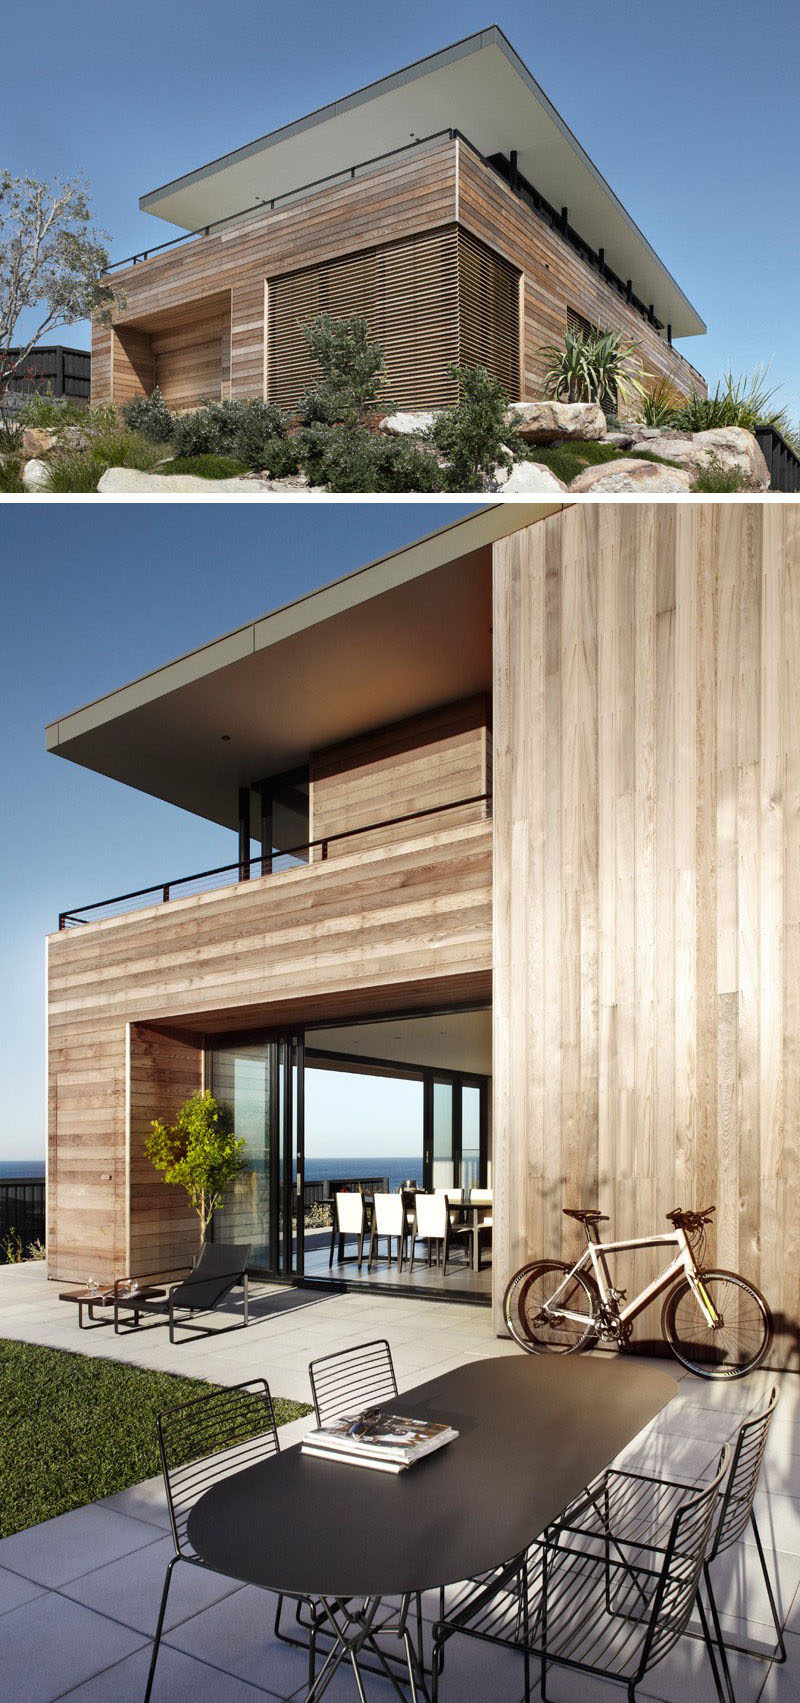 14 examples of modern beach houses from around the world for Contemporary beach house designs